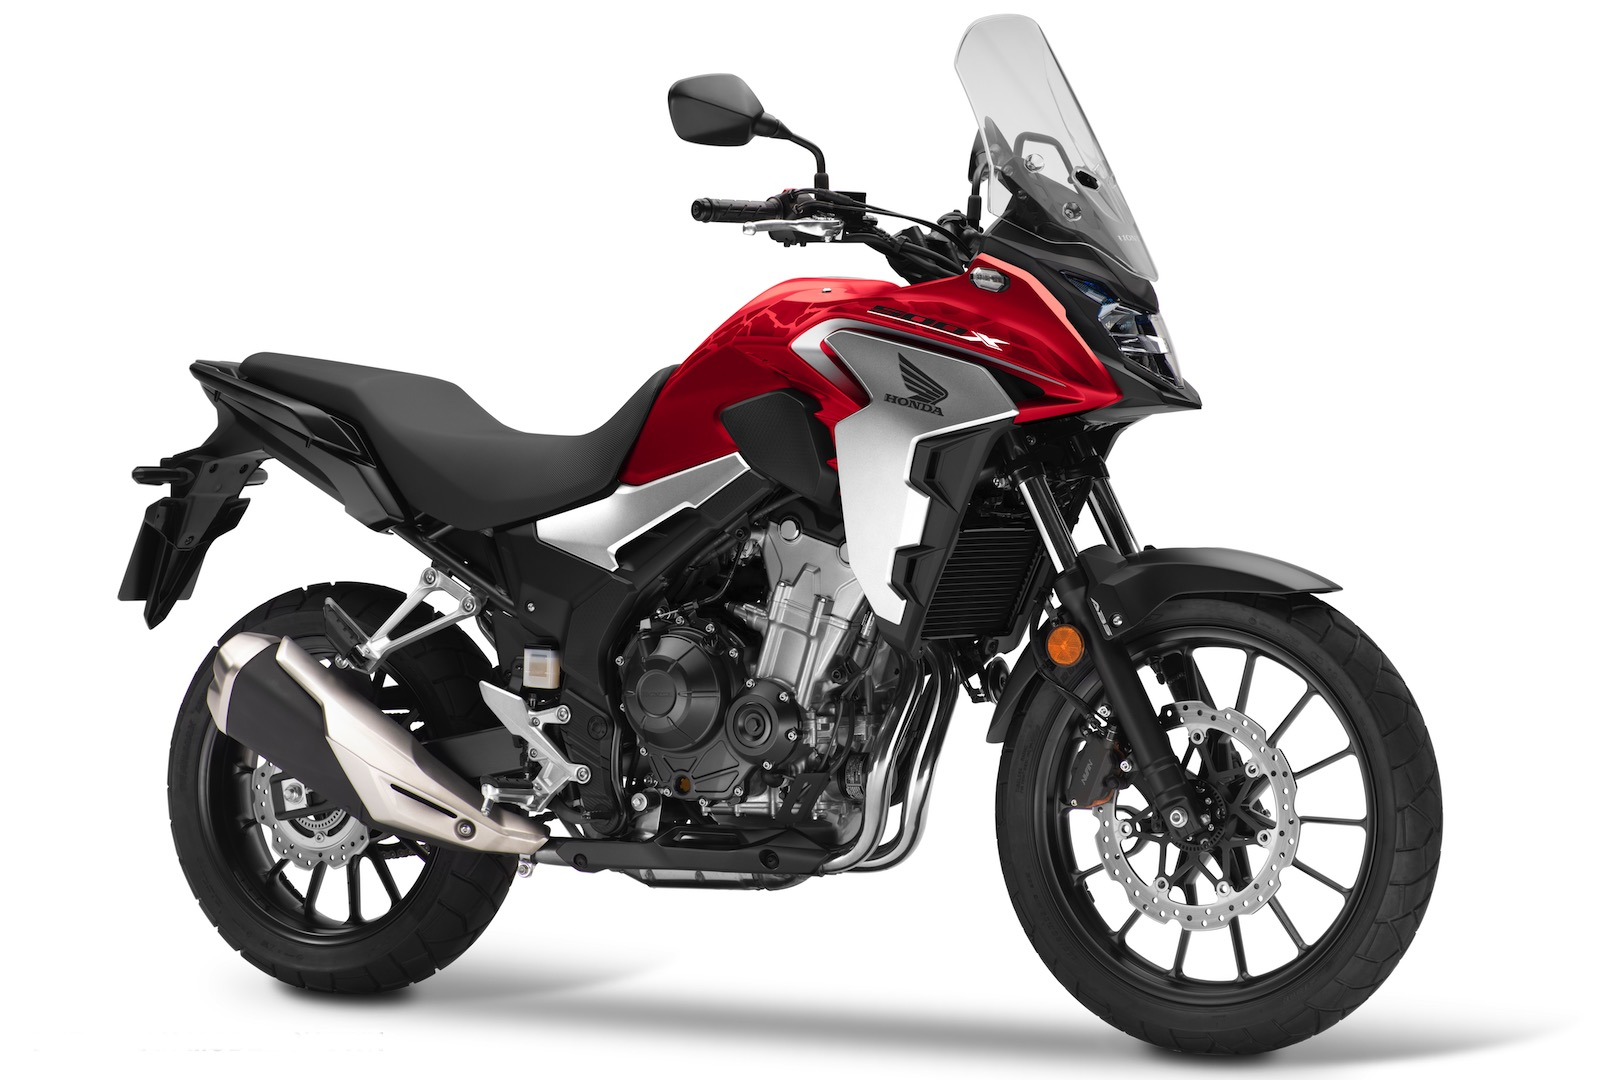 2019 honda cb500x first look review 8 fast facts gearopen. Black Bedroom Furniture Sets. Home Design Ideas